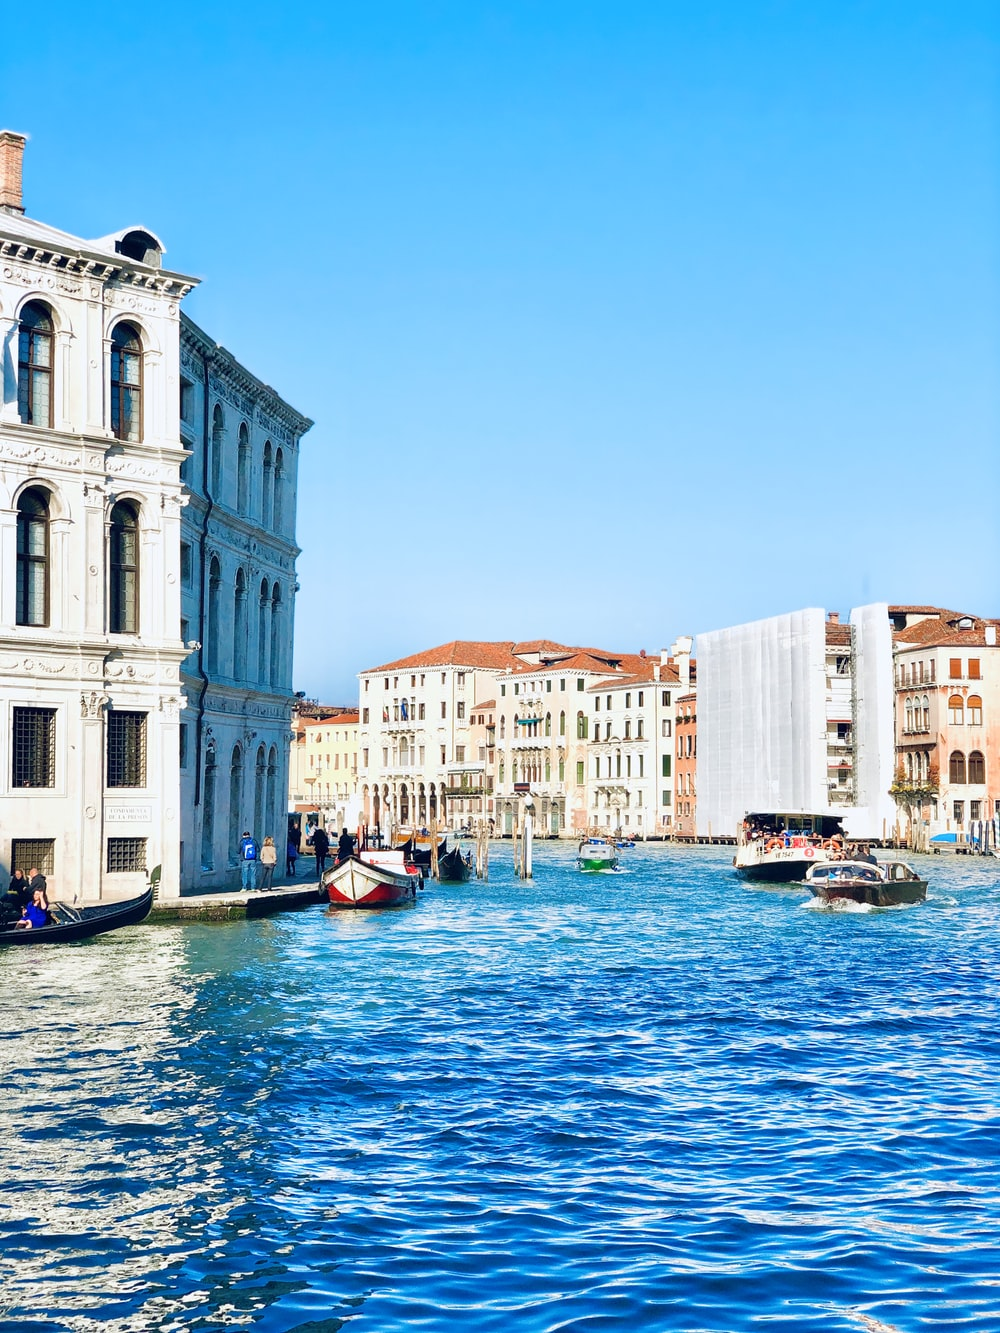 ferries and boats on Grand Canal during daytime